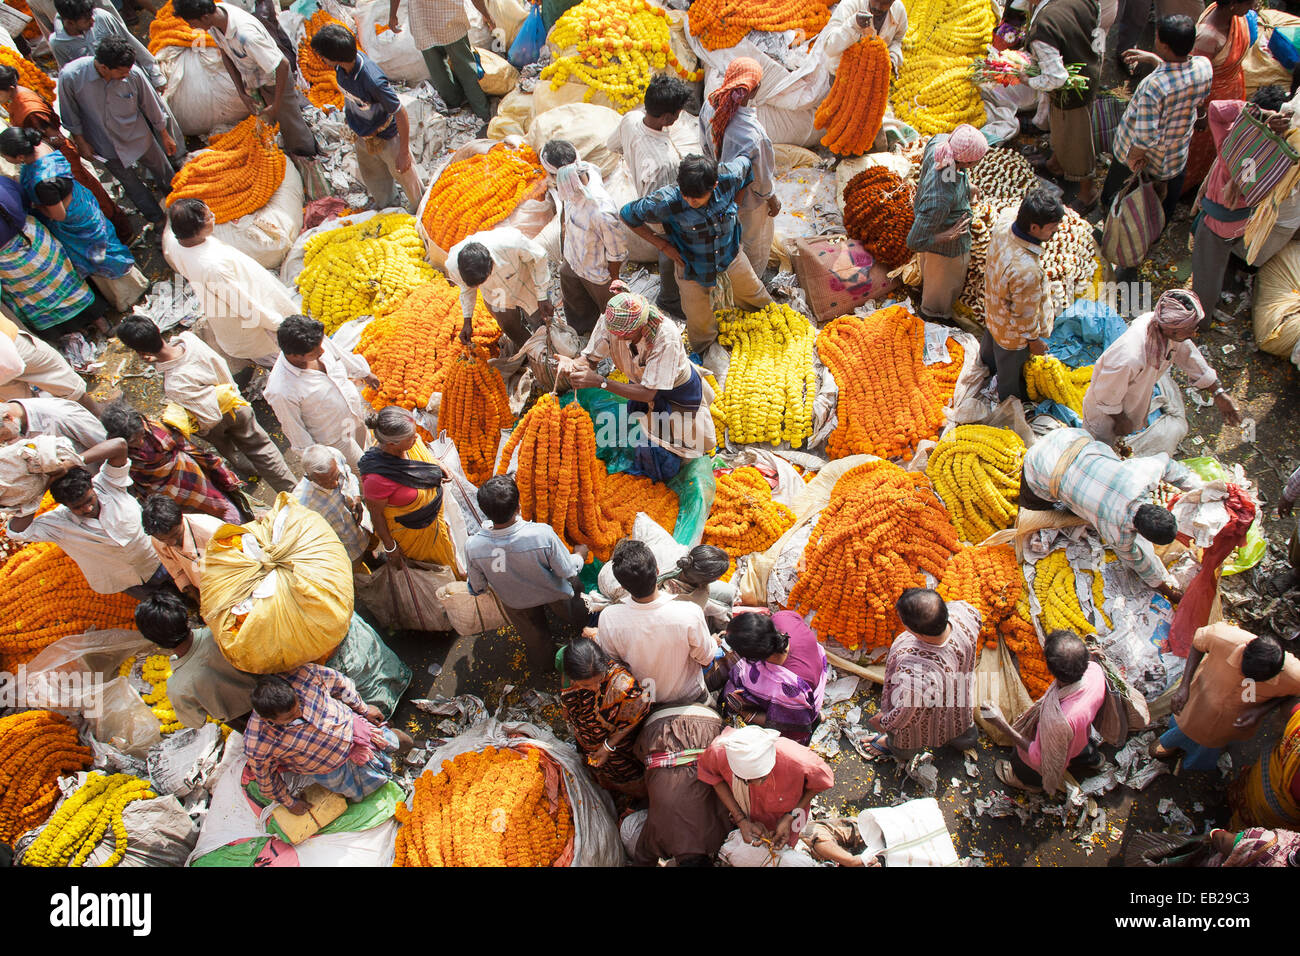 Aerial view of flower market bustling with activity and sack bags full of colorful flowers and garlands with sellers - Stock Image